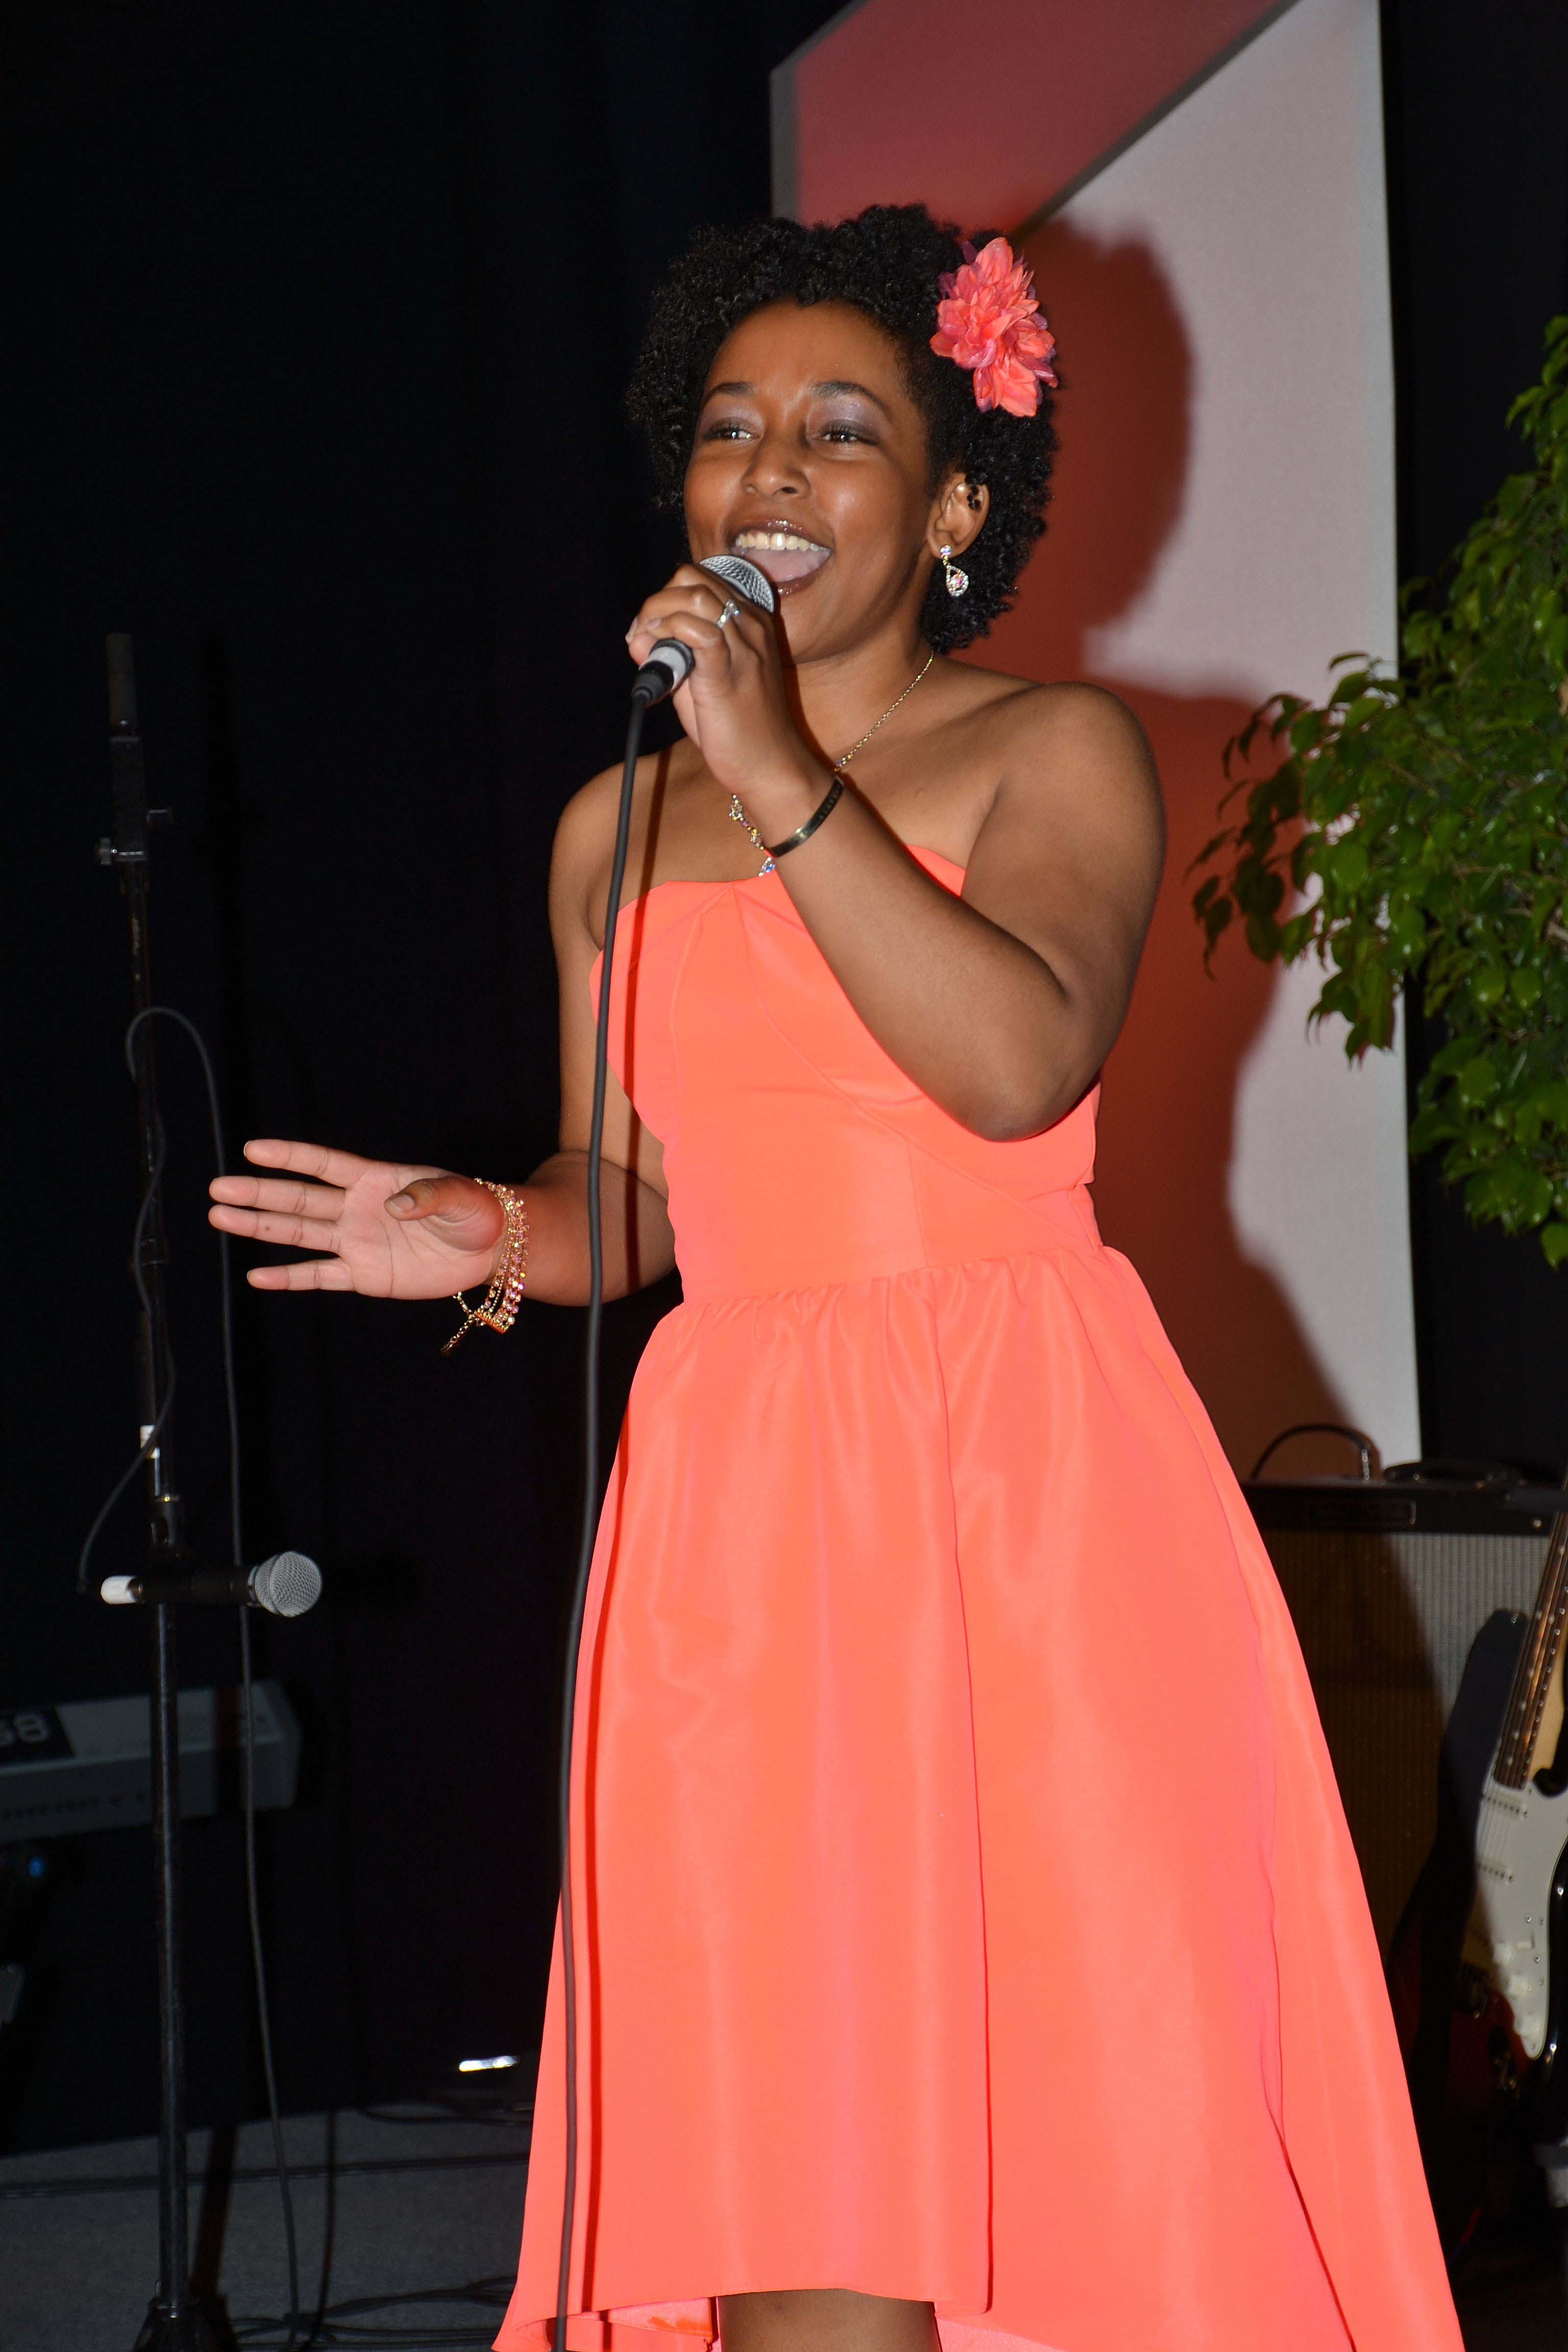 Jami Jackson, PhD statistics student at North Carolina State, performs in the ASA's Got Talent competition